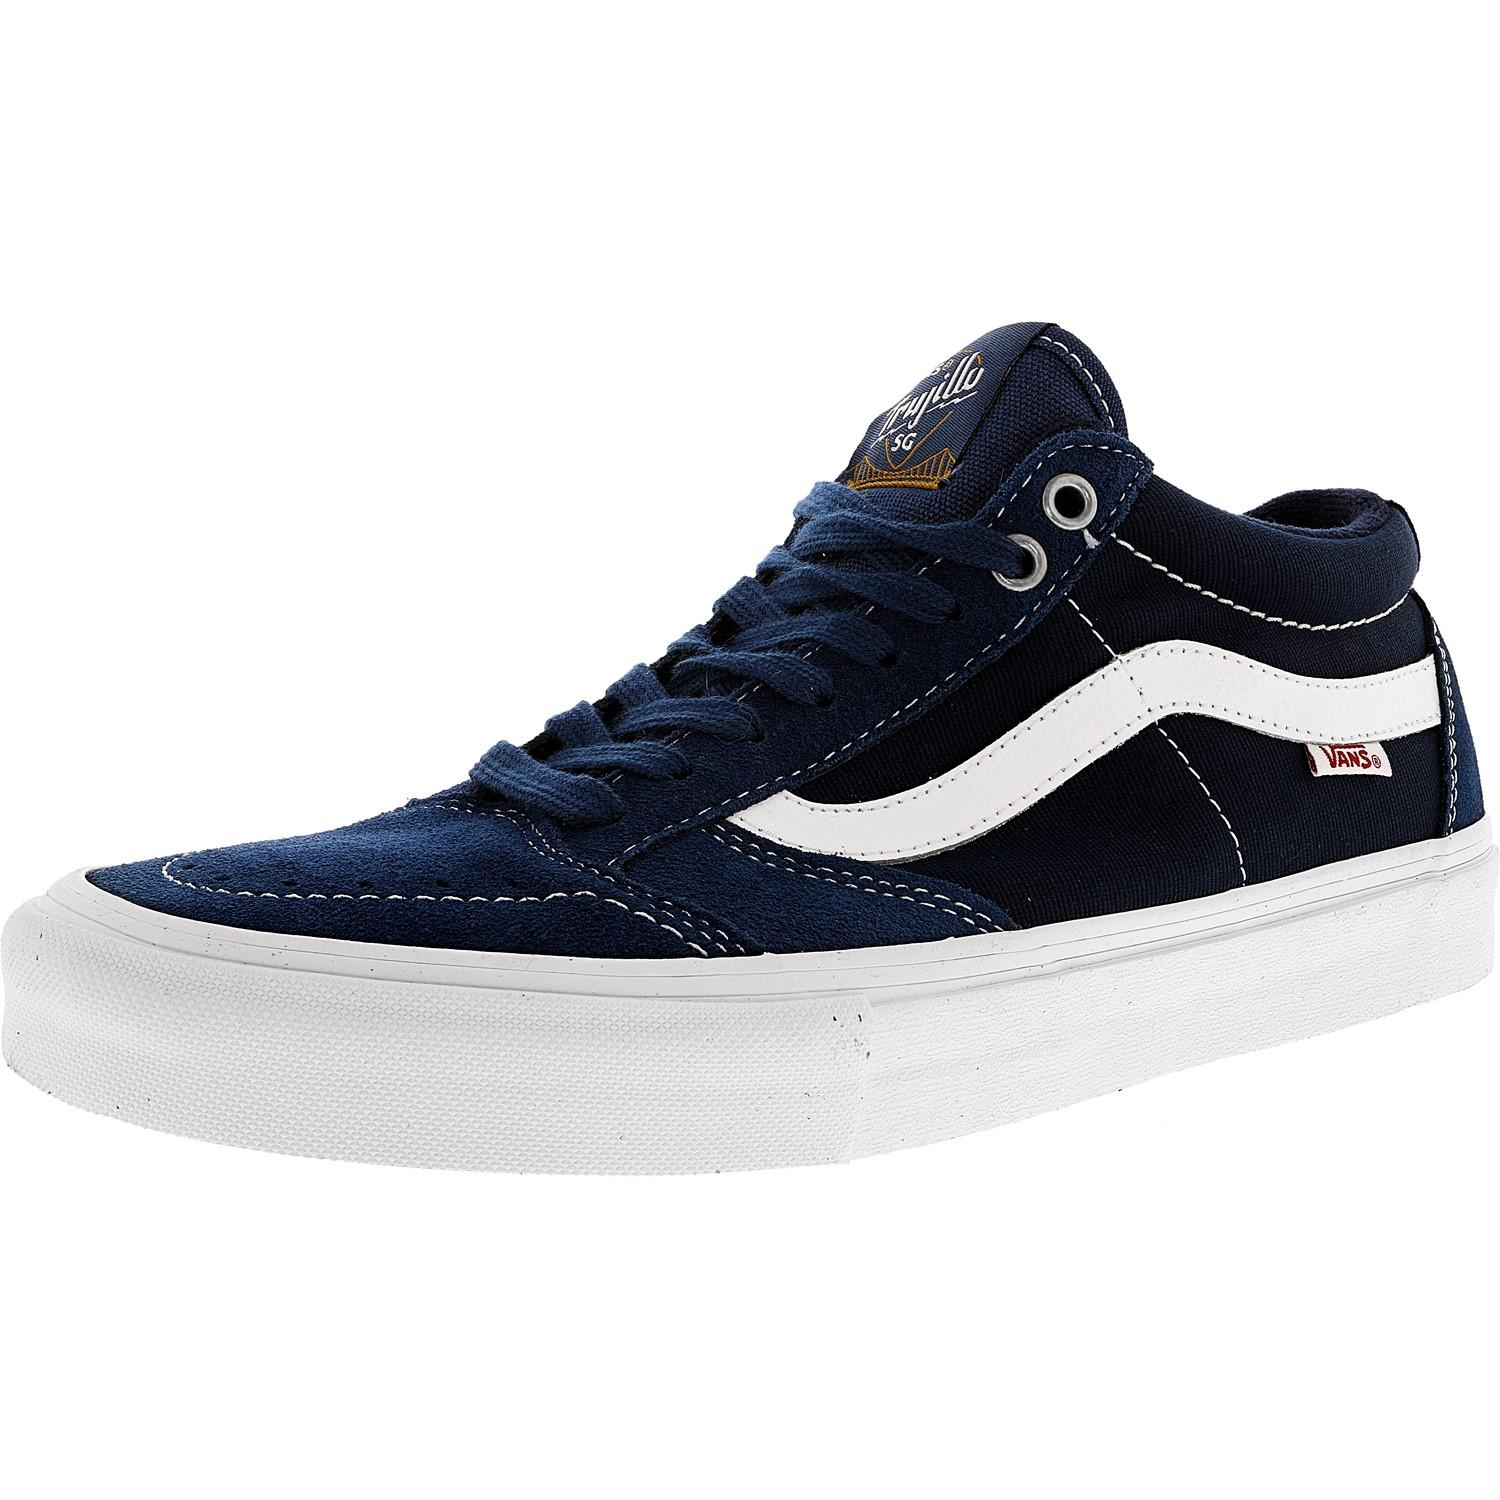 38d9a95d5a Lyst - Vans Tnt Sg Washed Canvas Navy   White Ankle-high ...